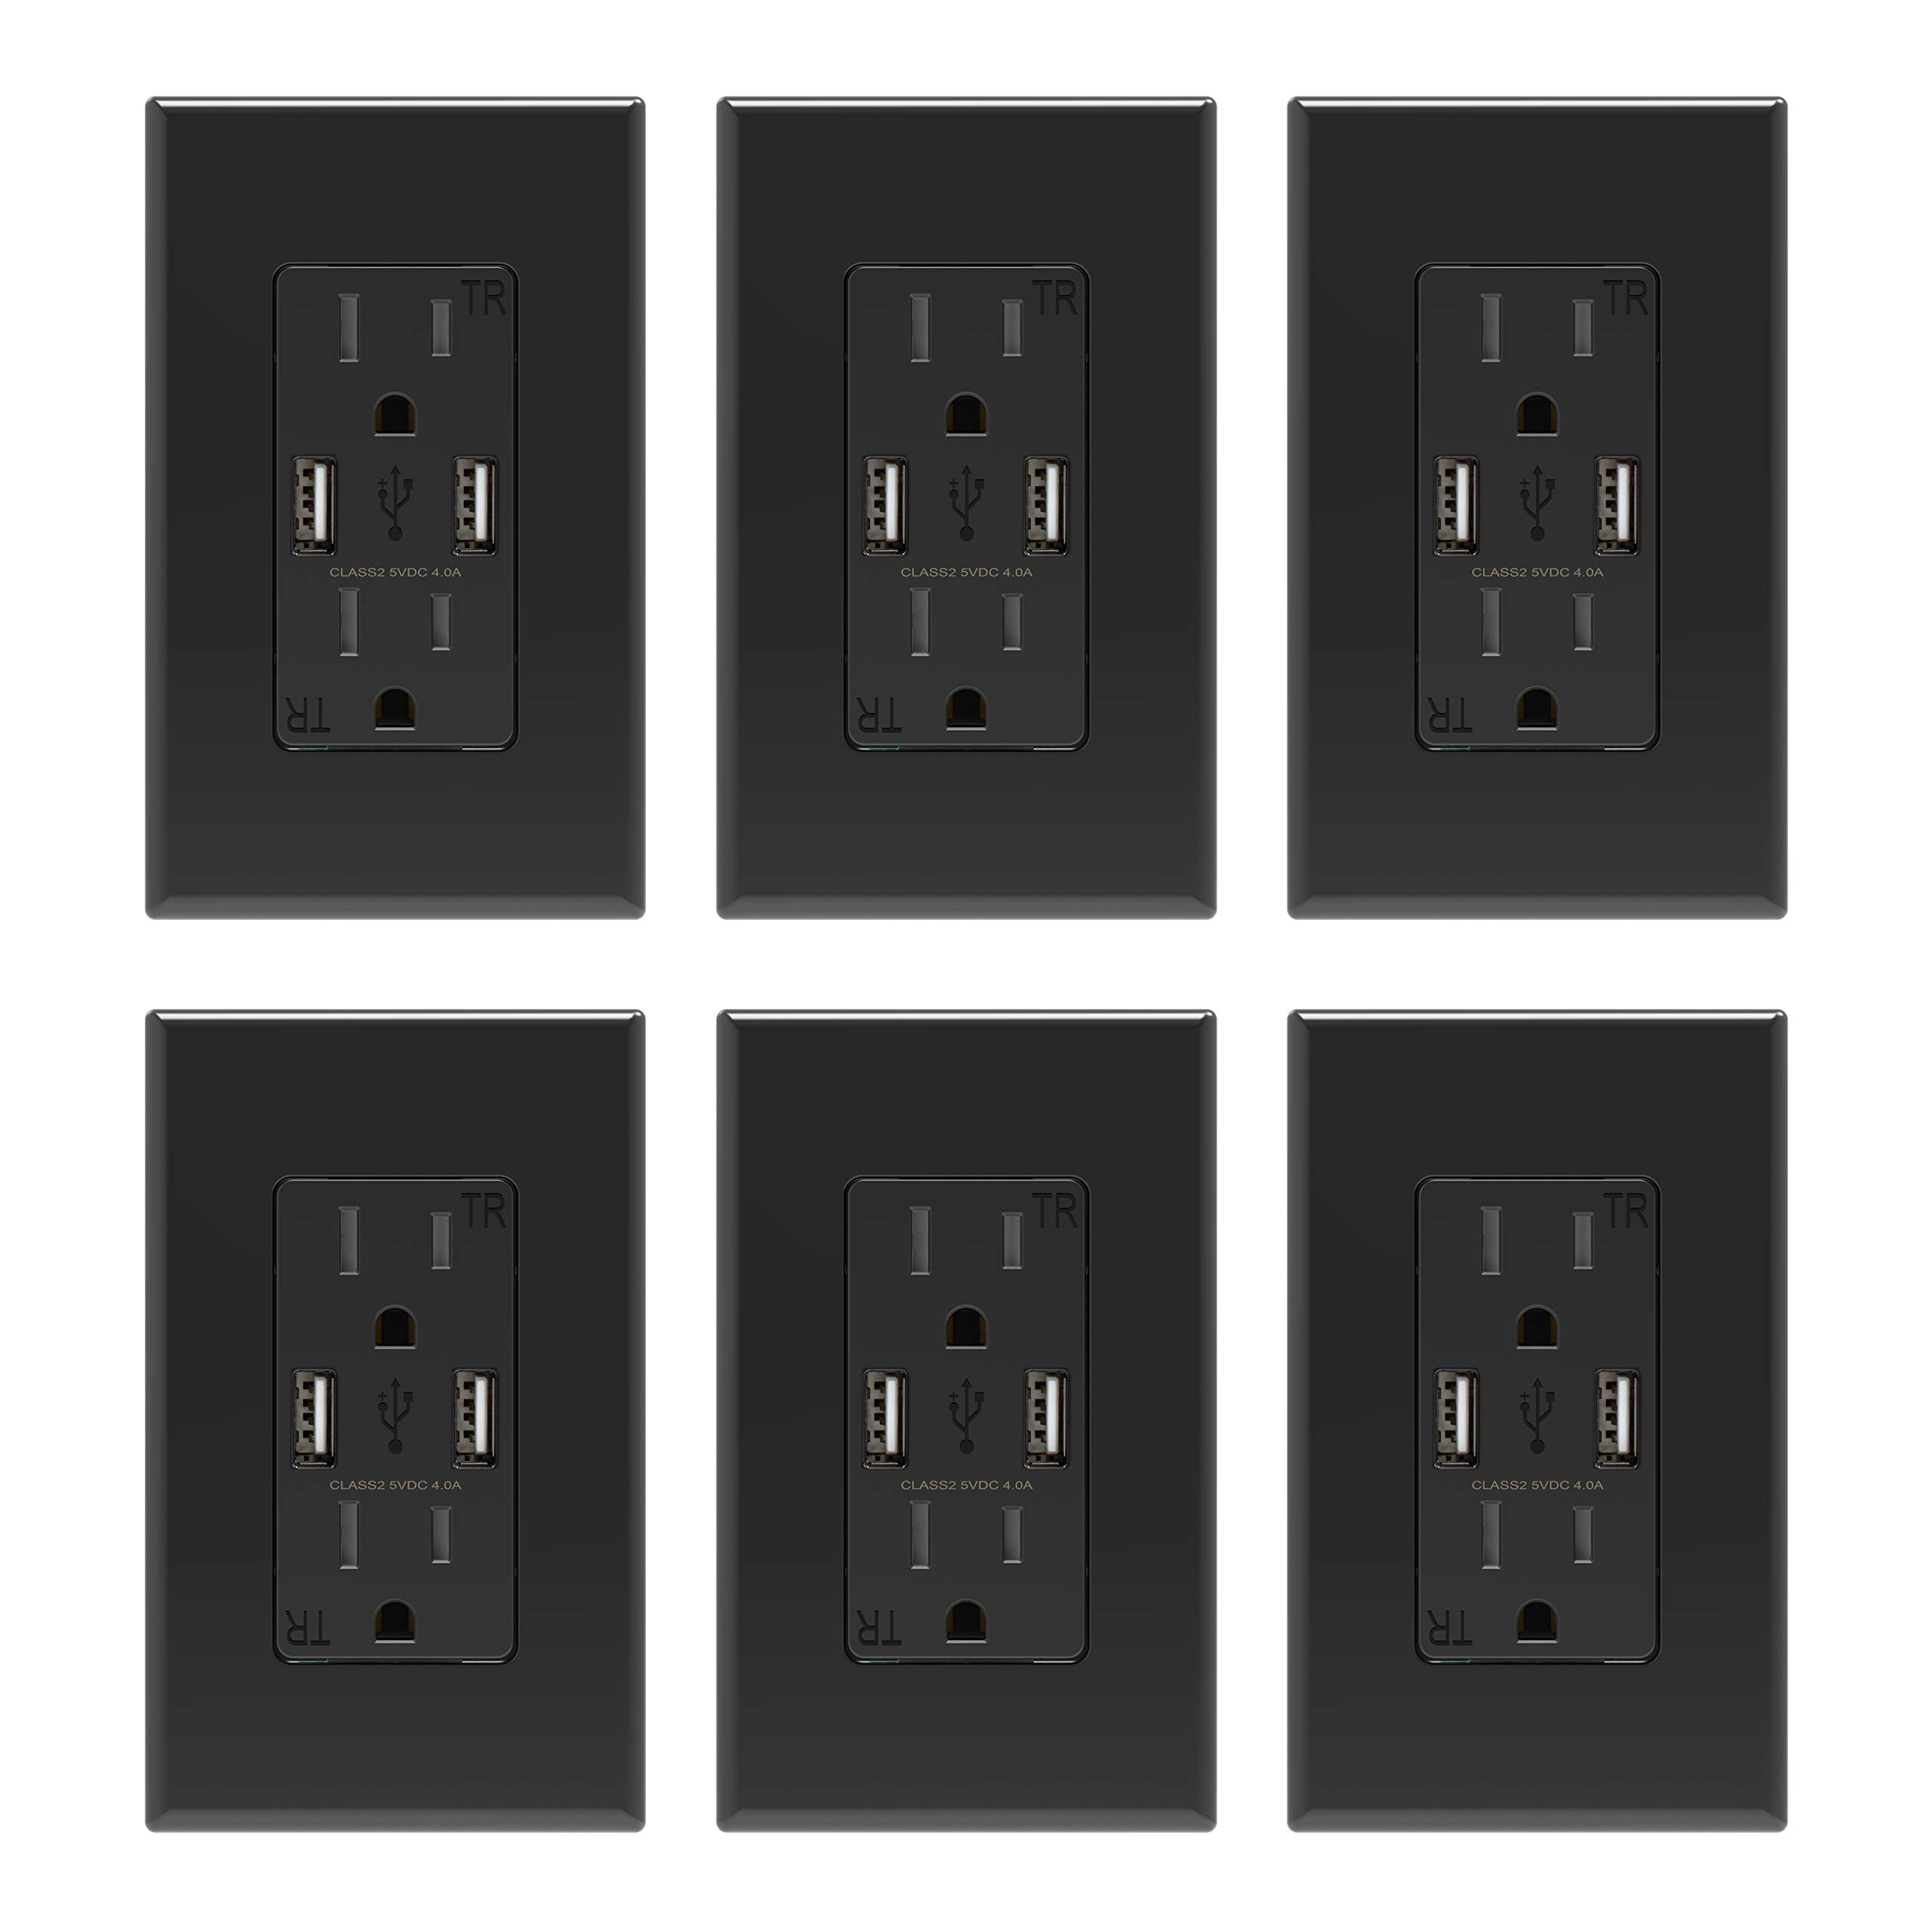 ELEGRP USB Charger Wall Outlet, Dual High Speed 4.0 Amp USB Ports with Smart Chip, 15 Amp Duplex Tamper Resistant Receptacle Plug NEMA 5-15R, Wall Plate Included, UL Listed (6 Pack, Black) by ELEGRP